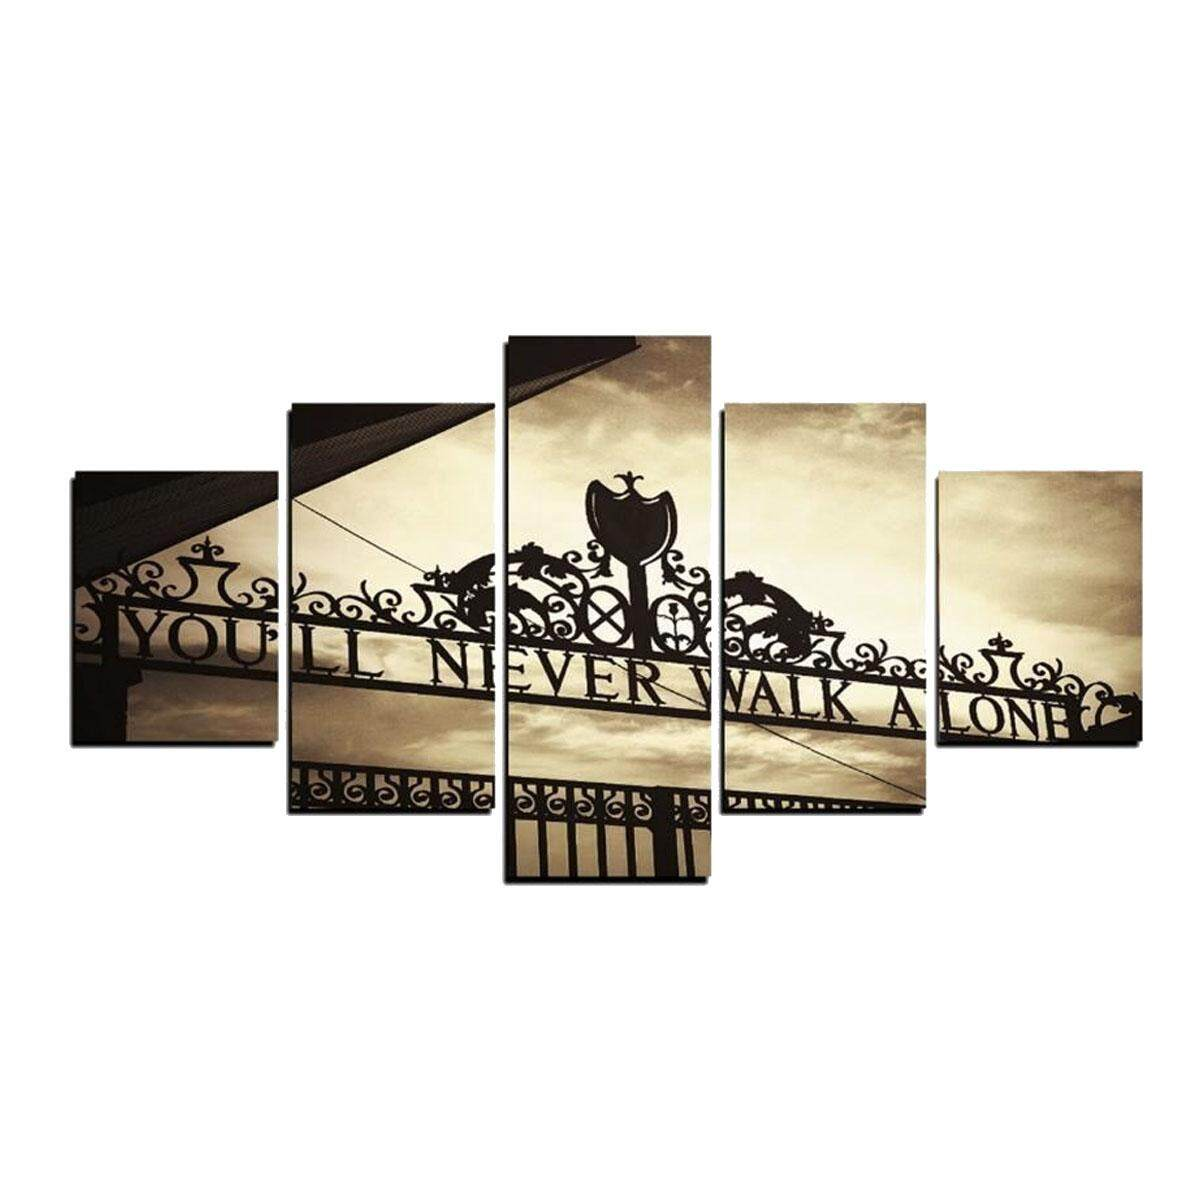 5pcs Frameless Liverpools Youll Never Walk Alone Canvas Pictures Wall Art Decor